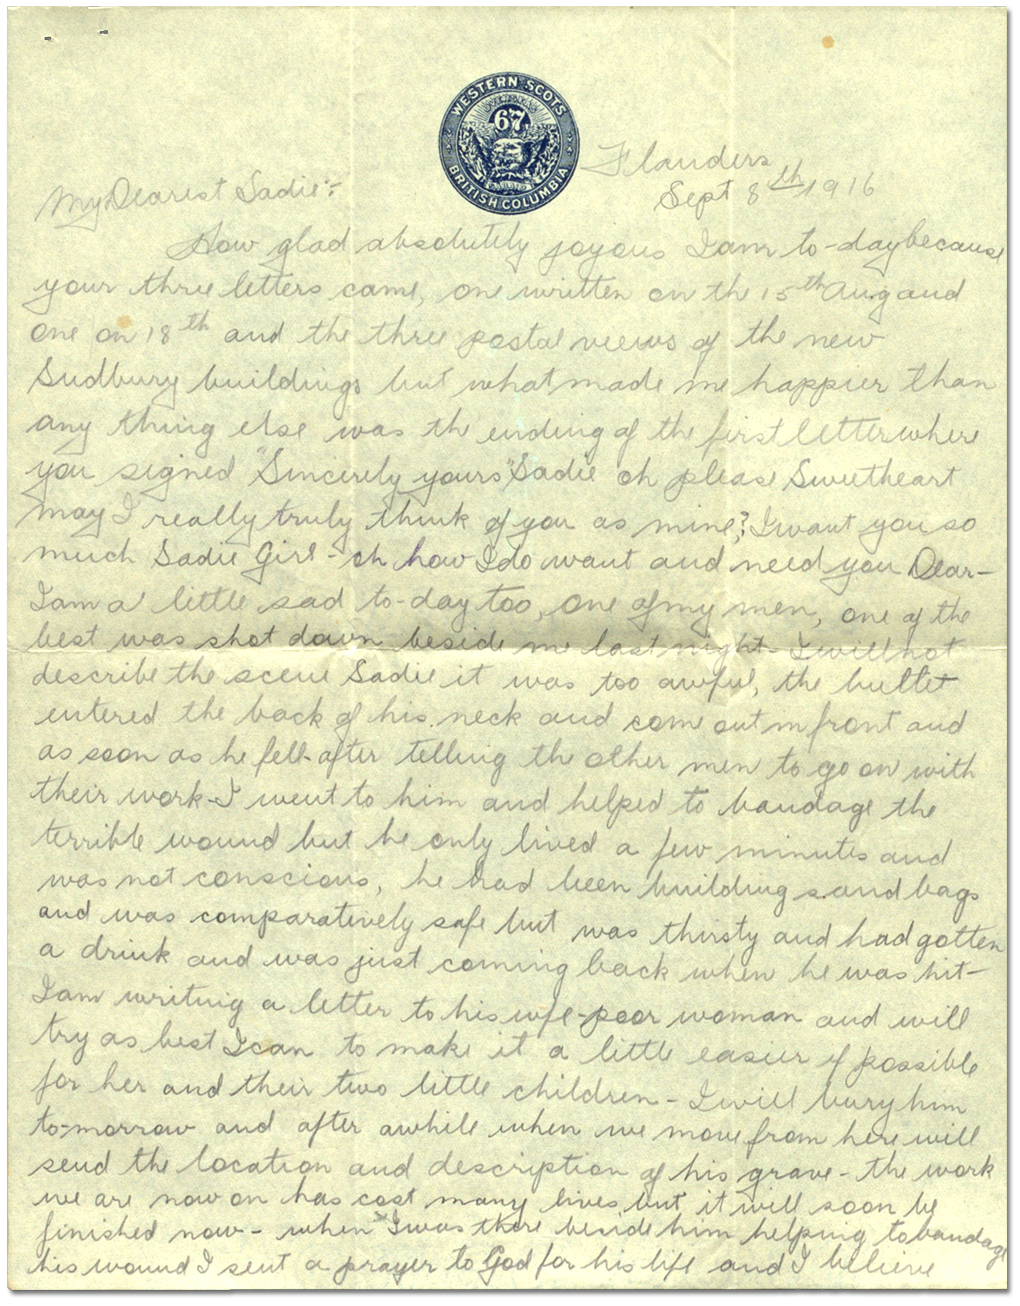 Letter from Harry Mason to Sadie Arbuckle, September 8, 1916